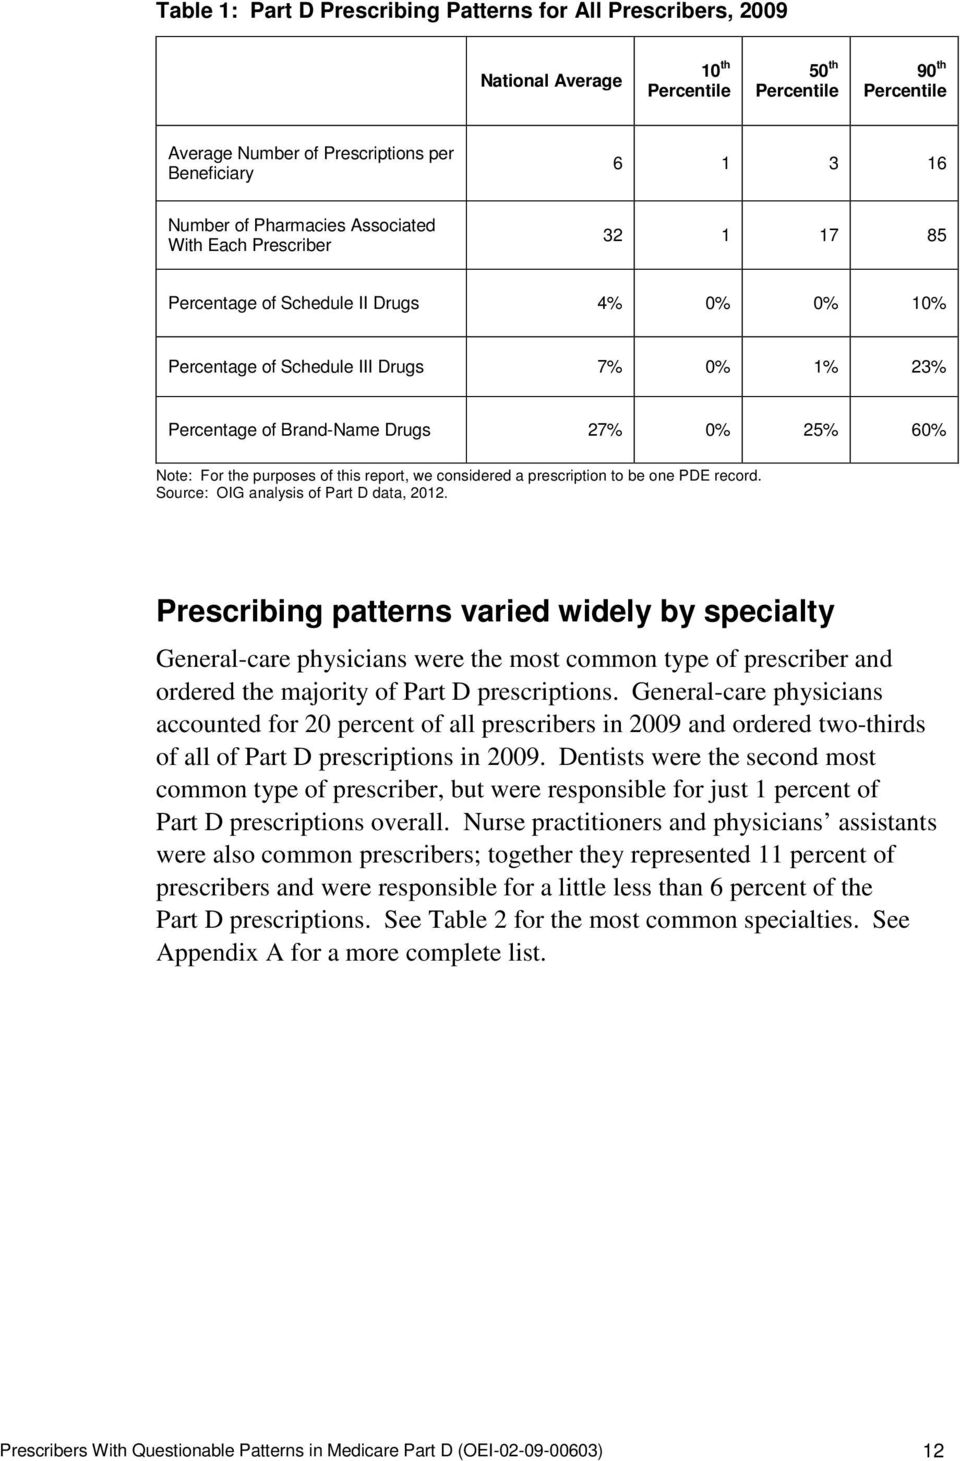 For the purposes of this report, we considered a prescription to be one PDE record. Source: OIG analysis of Part D data, 2012.